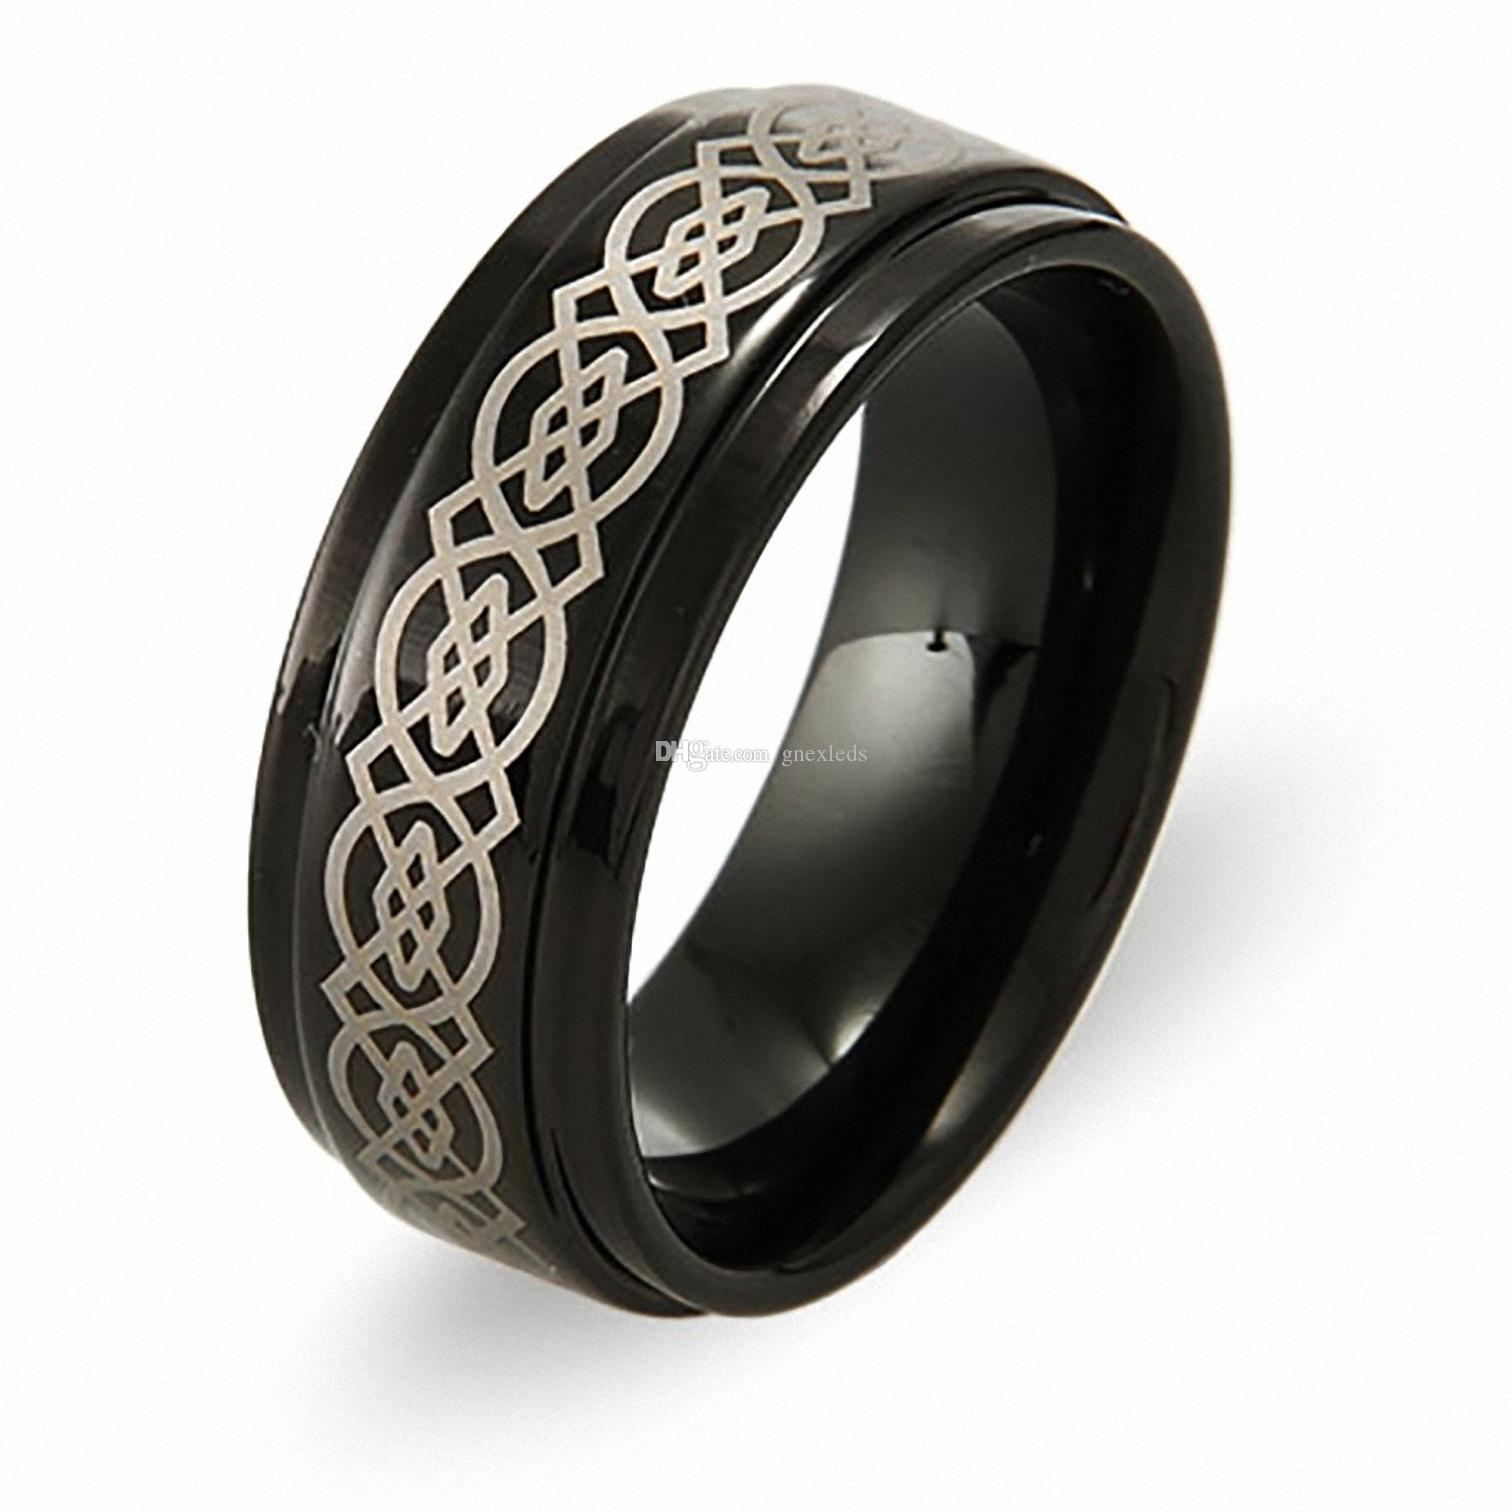 amazon for tungsten fiber plated wedding com band dp rings mnh bands gold men mens carbon edge beveled black rose inlay